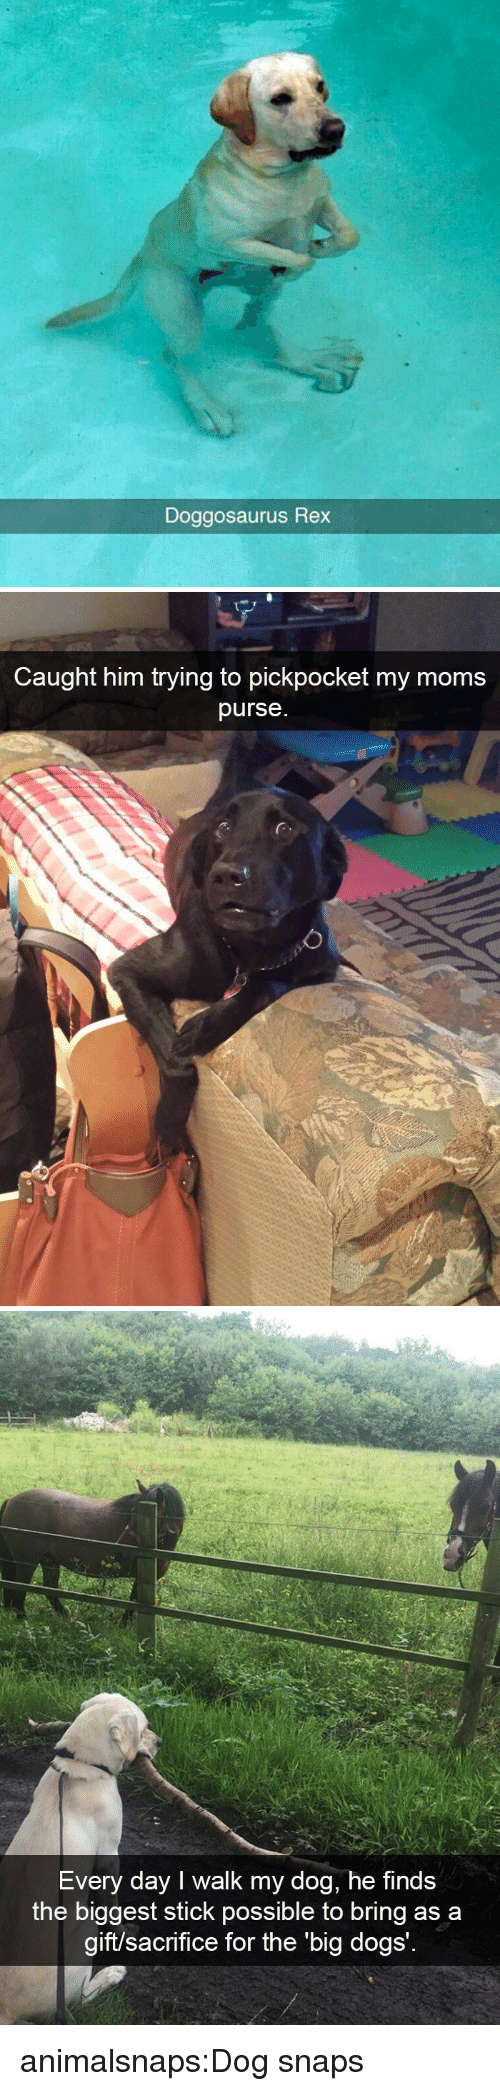 Dogs, Moms, and Target: Doggosaurus  Rex   Caught him trying to pickpocket my moms  purse   Every day I walk my dog, he finds  the biggest stick possible to bring as a  aift/sac  rifice for the 'big dogs animalsnaps:Dog snaps